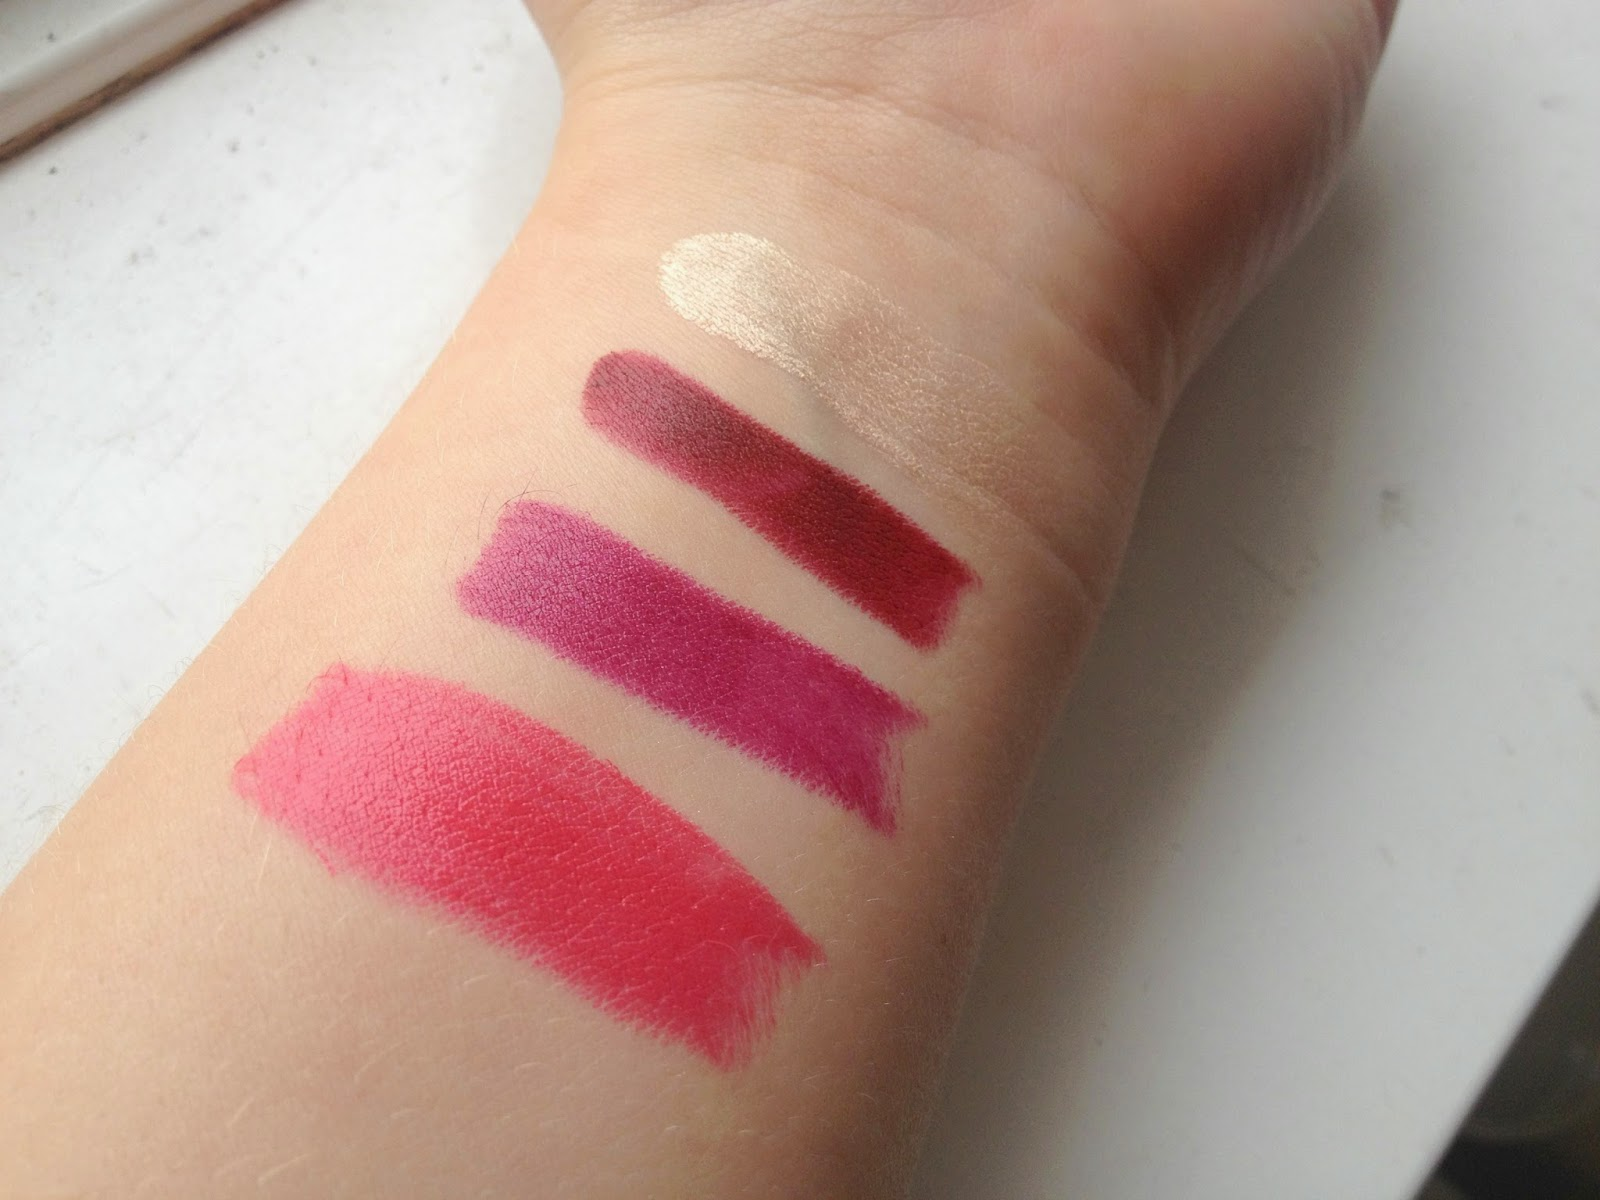 MAC Collection, MAC Lipsticks in Impassioned, Rebel and Diva, MAC Paintpot in Bare Study Swatches